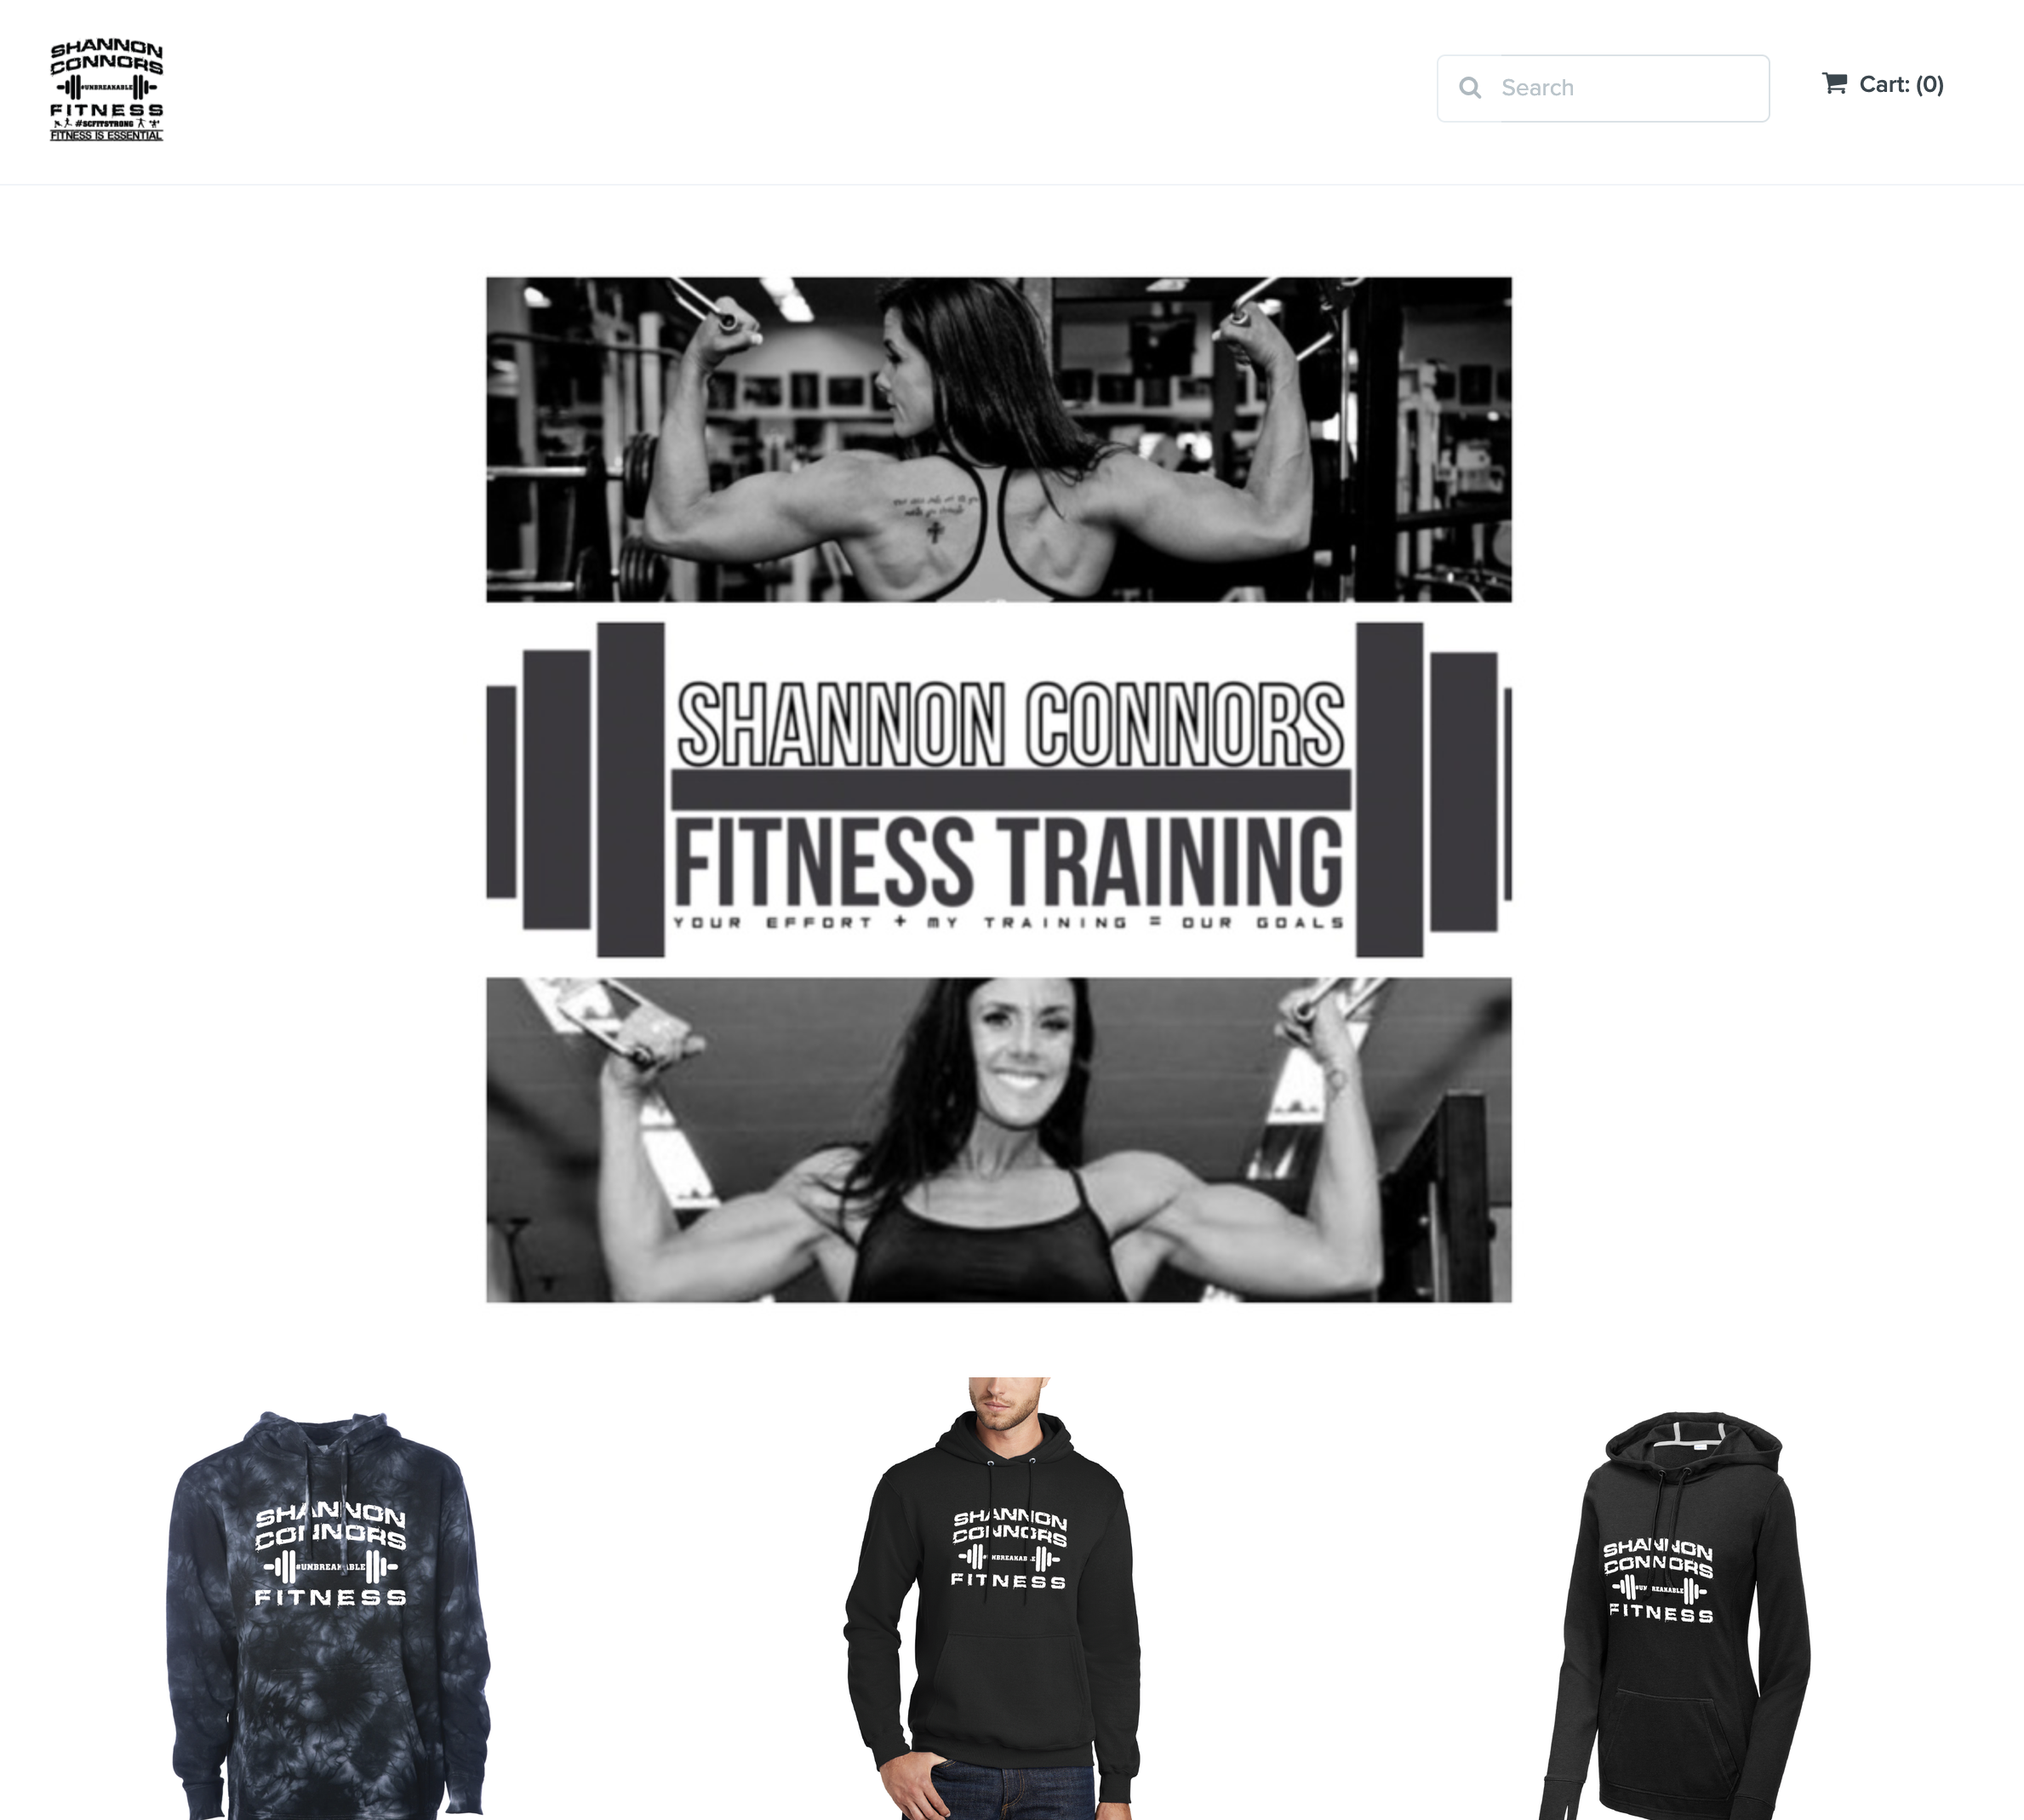 Shannon Connors Fitness Training